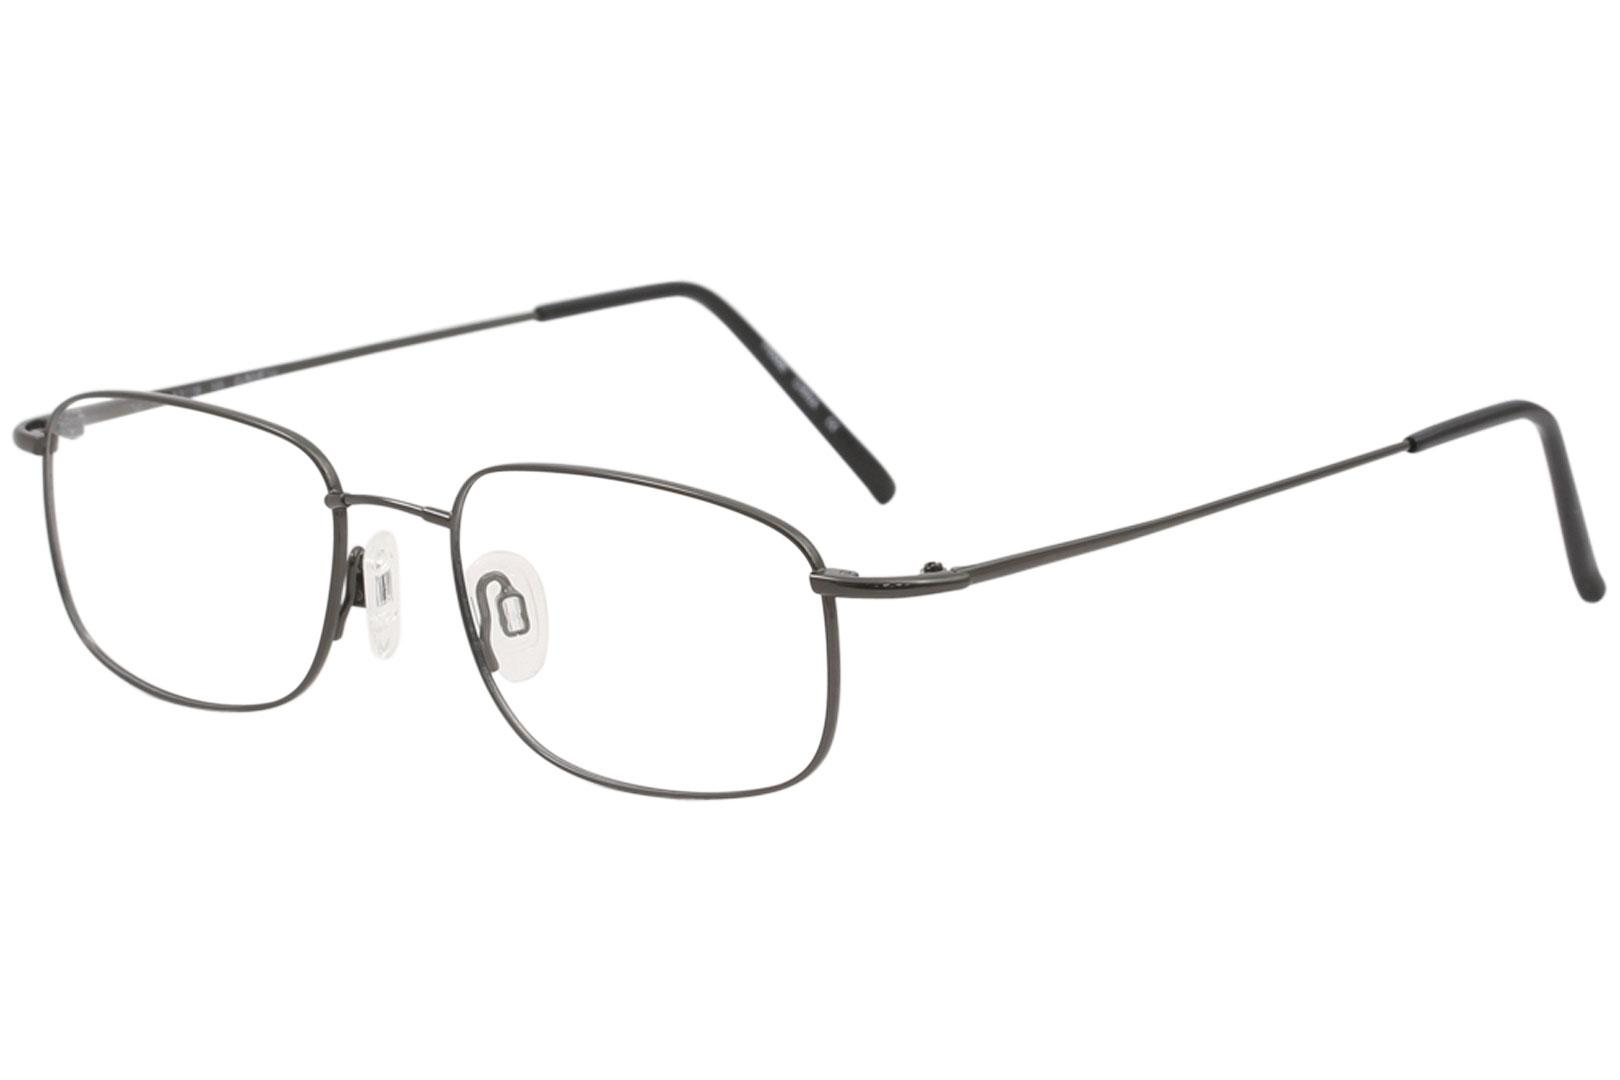 Image of Flexon Men's Eyeglasses 610 Full Rim Optical Frame - Gunmetal   033 - Lens 53 Bridge 18 Temple 145mm